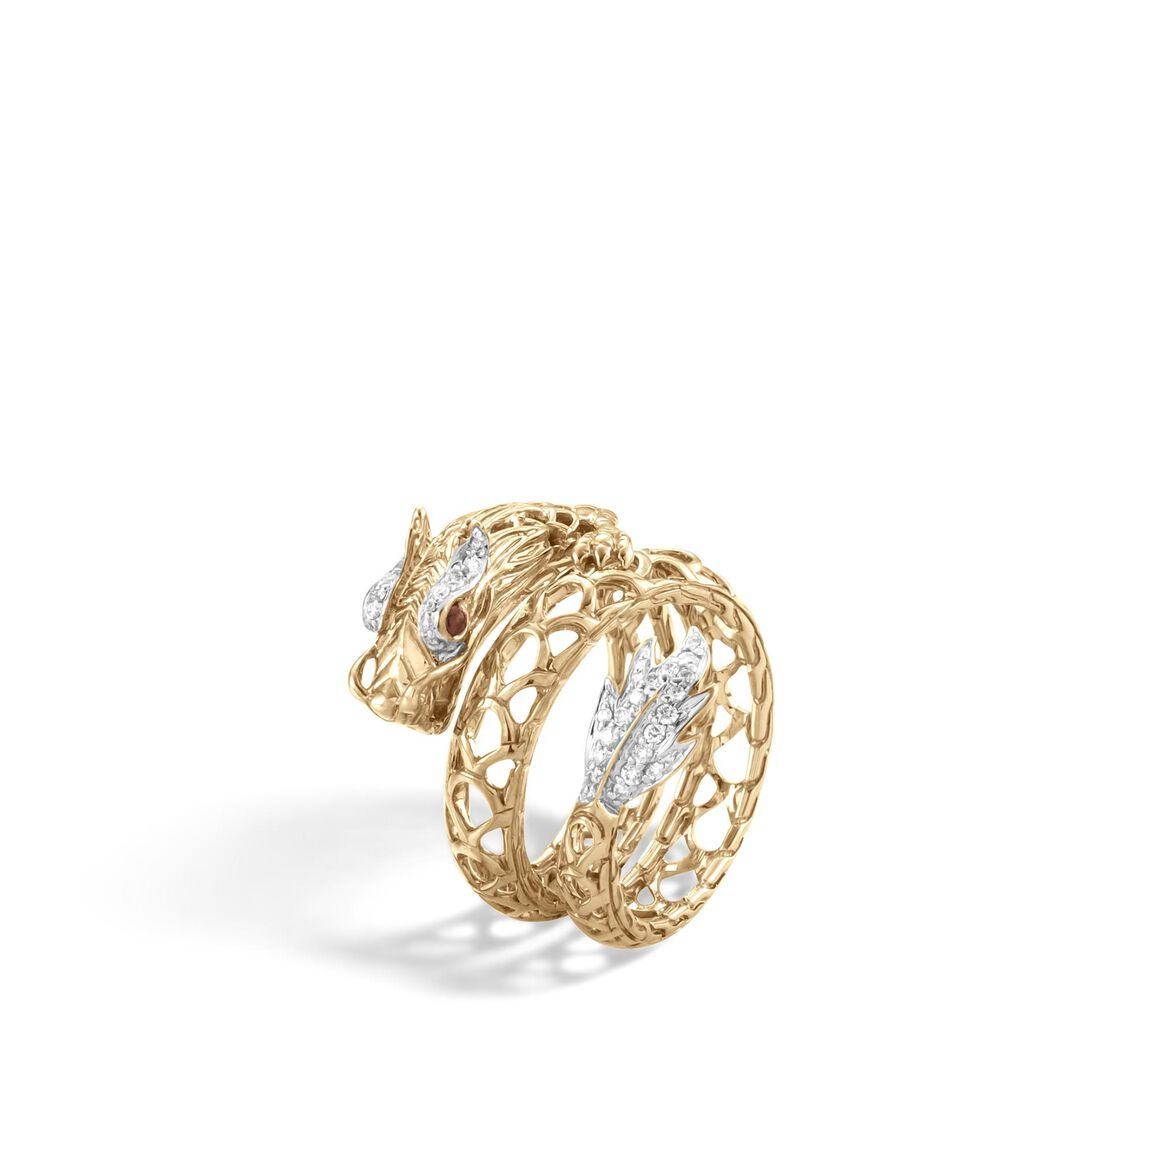 Legends Naga Coil Ring in 18K Gold with Diamonds